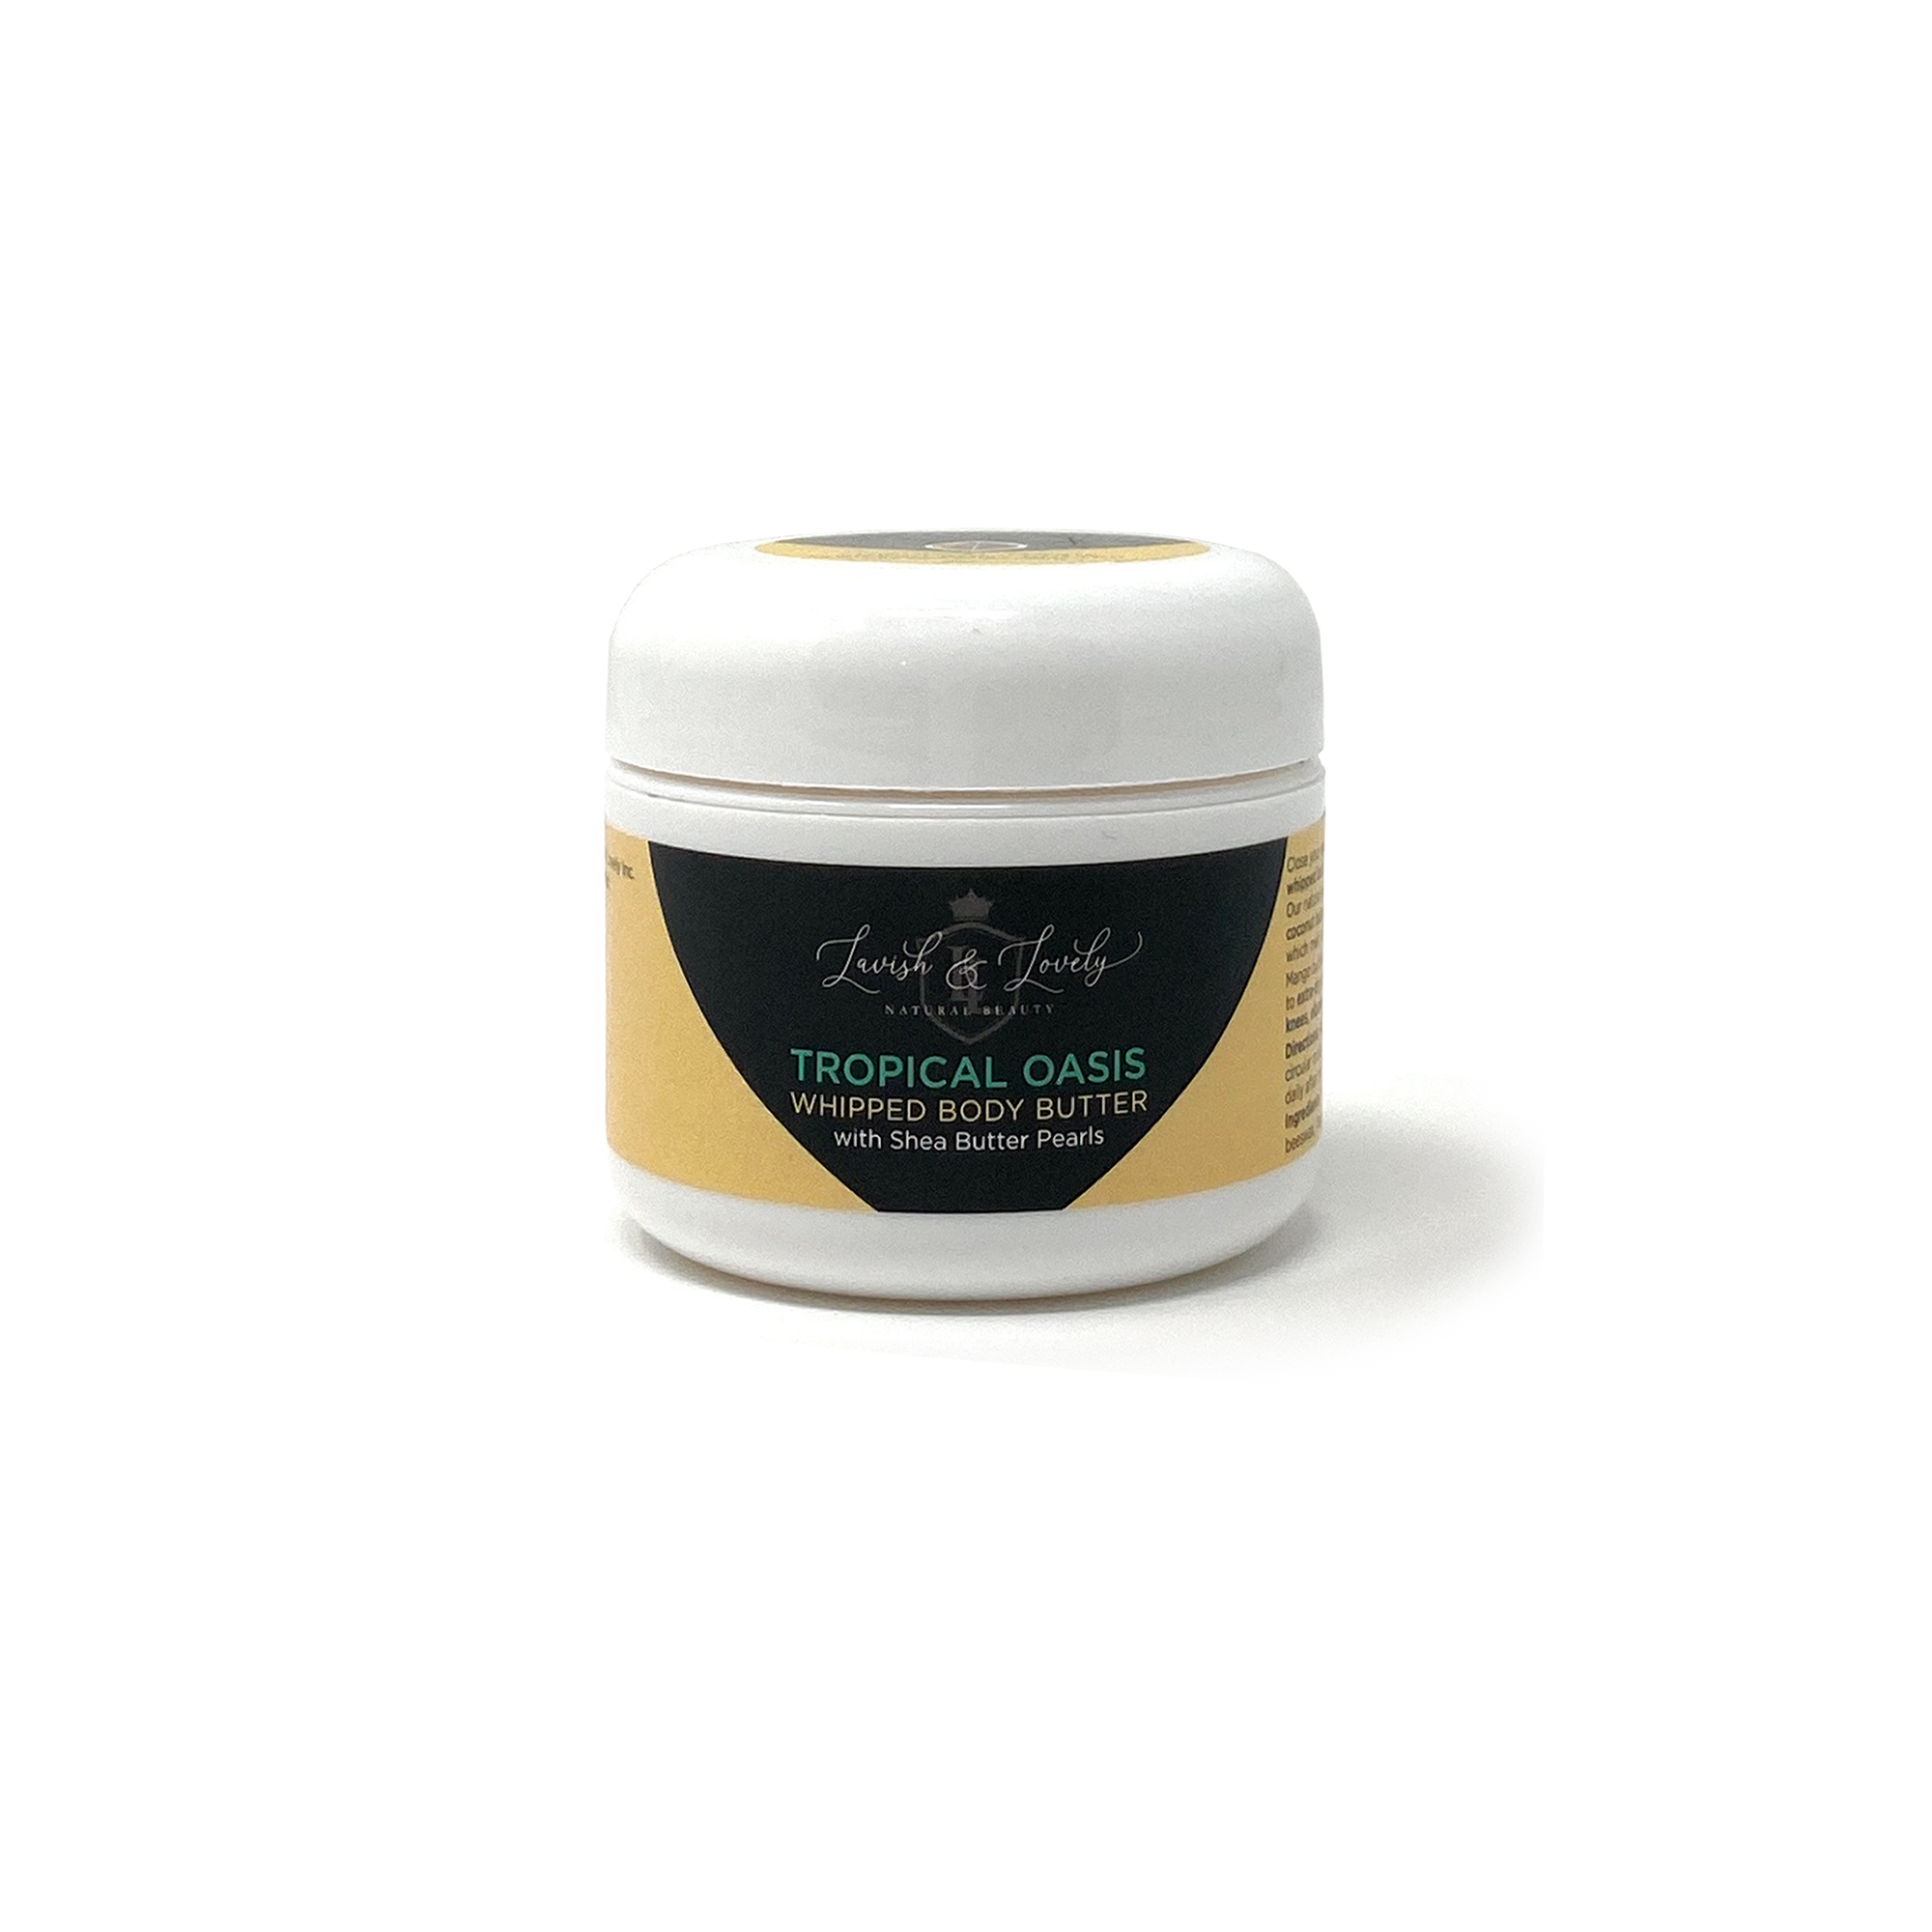 Lavish & Lovely - Tropical Oasis Scented Whipped Body Butter with Shea Pearls (2oz)